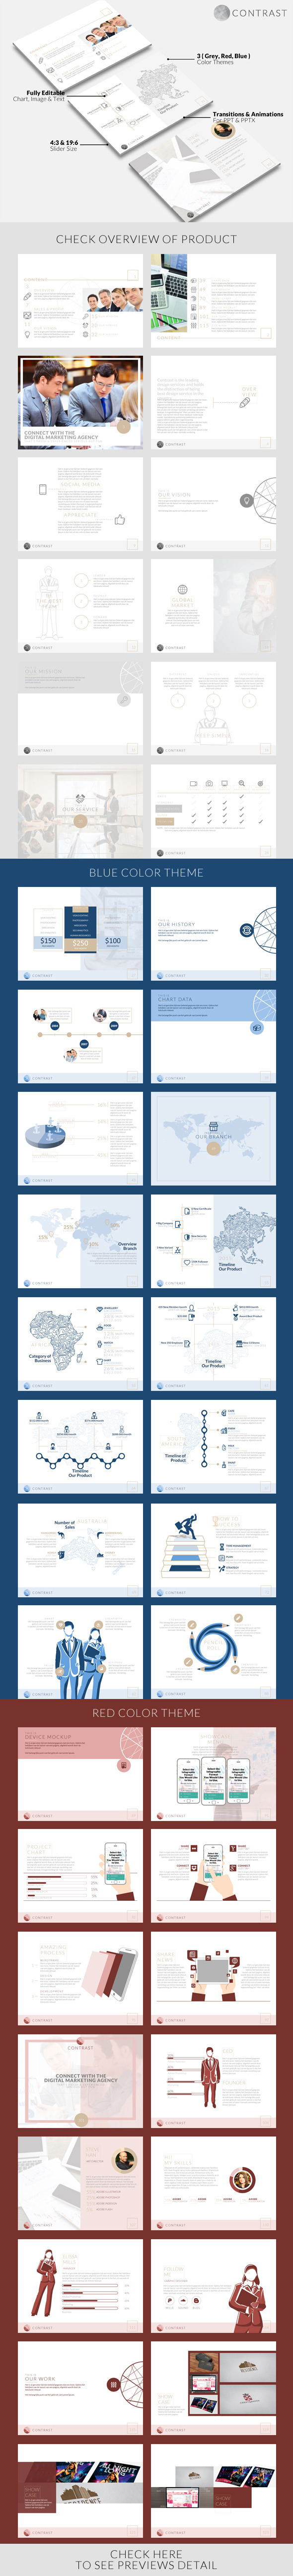 Contrast Powerpoint Template - PowerPoint Templates Presentation Templates